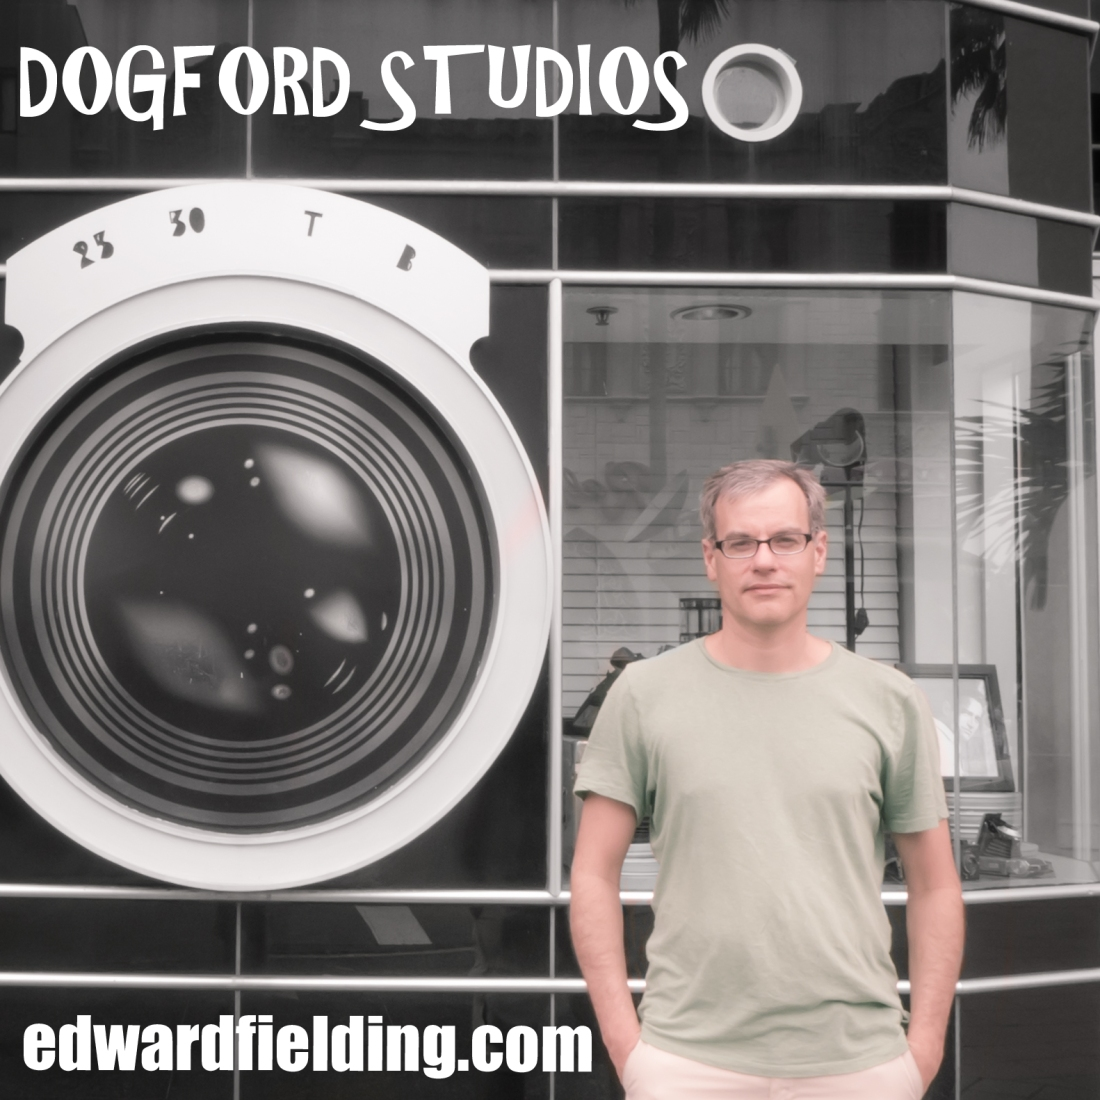 Edward Fielding at Dogford Studios